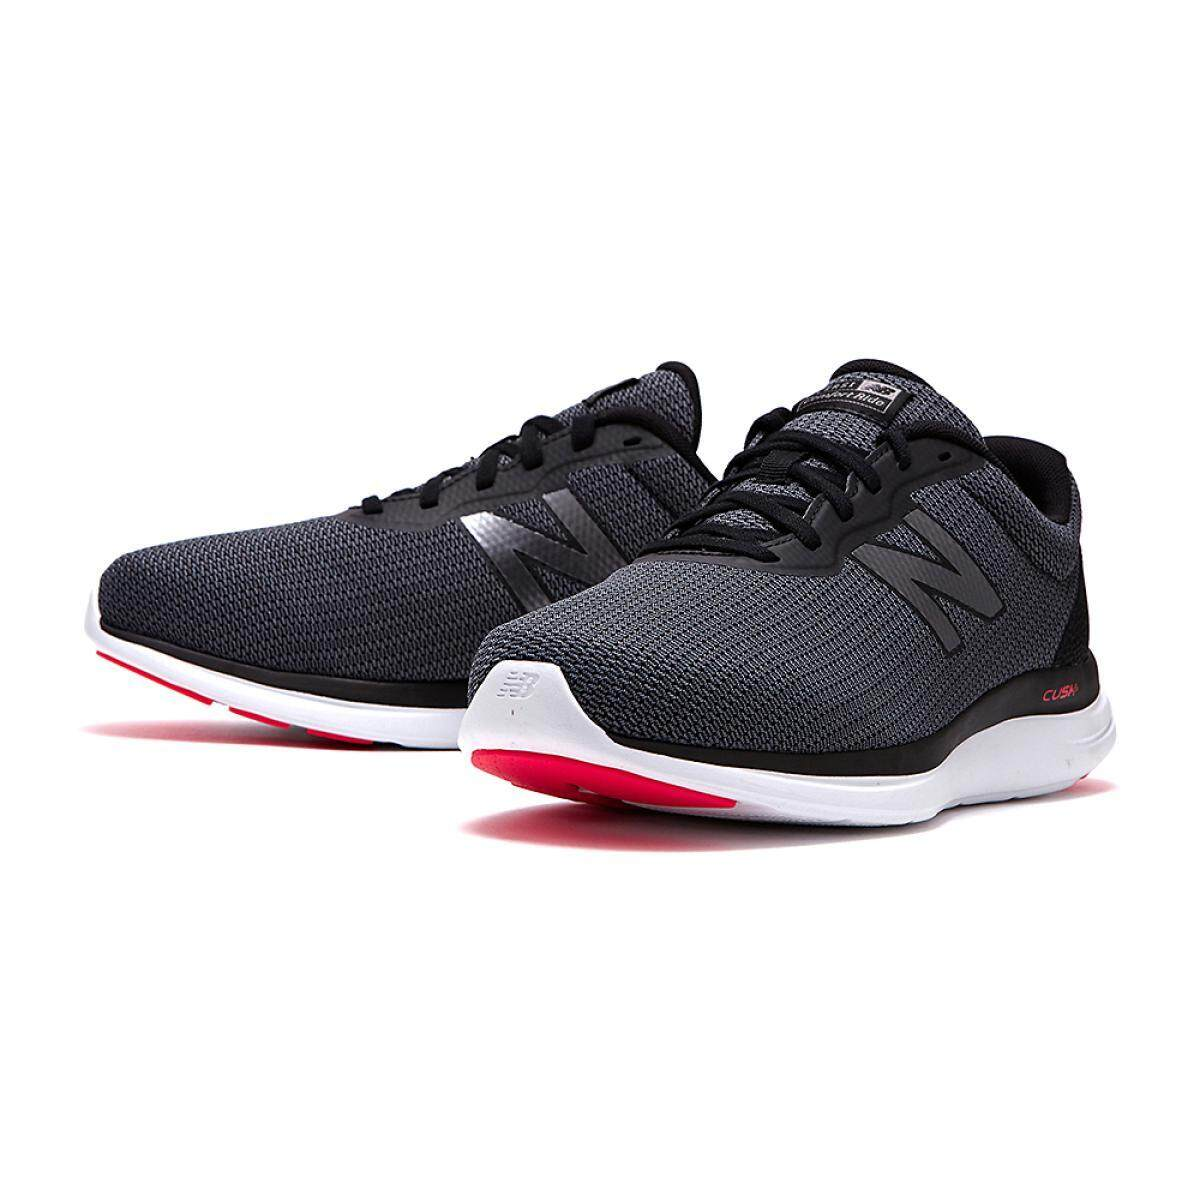 a5dccbabfaba3 New Balance Men's Sports Shoes - Running Shoes price in Malaysia ...